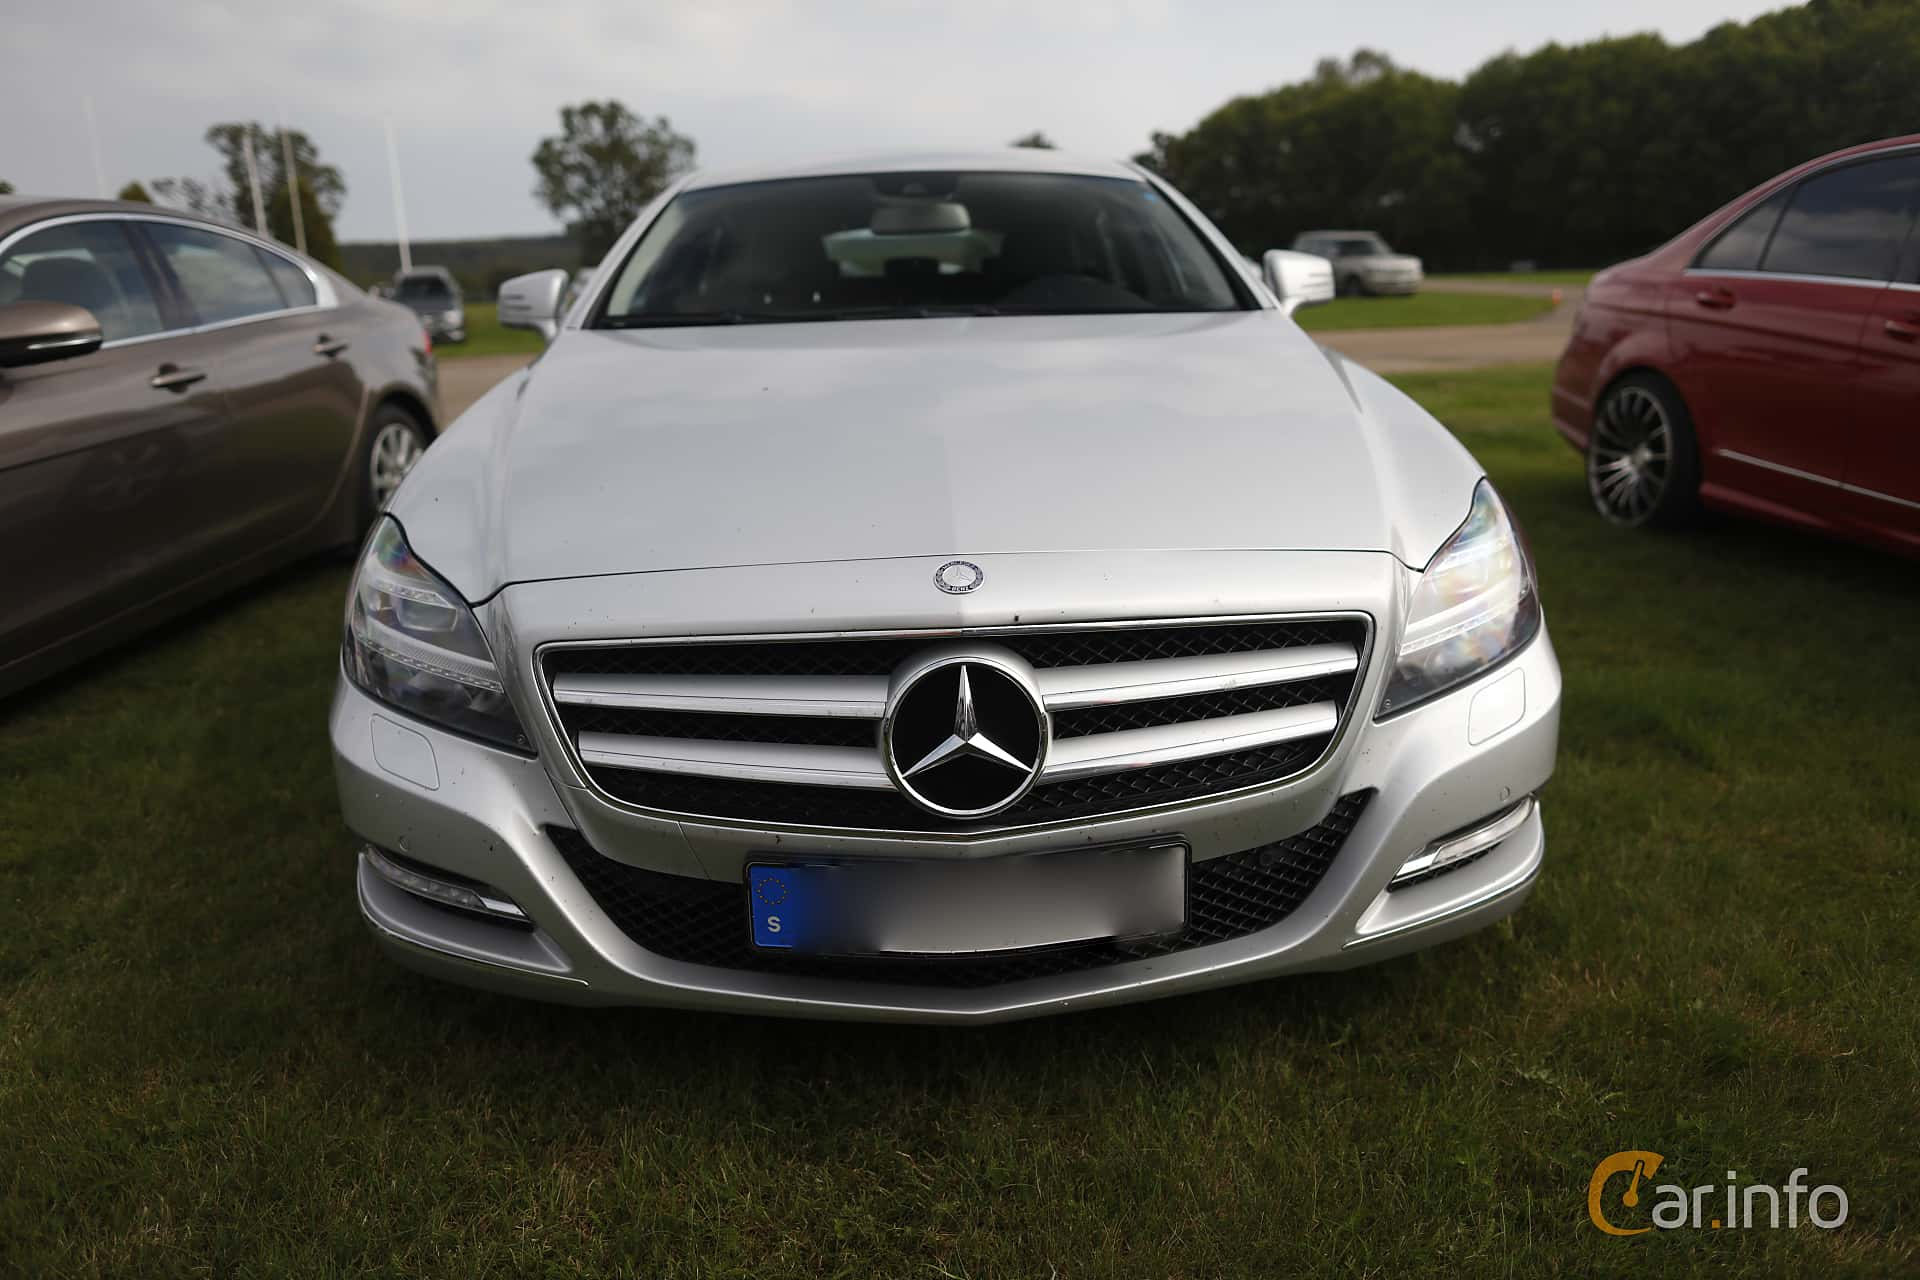 Mercedes-Benz CLS 250 CDI Shooting Brake  7G-Tronic Plus, 204hp, 2013 at Autoropa Racing day Knutstorp 2019